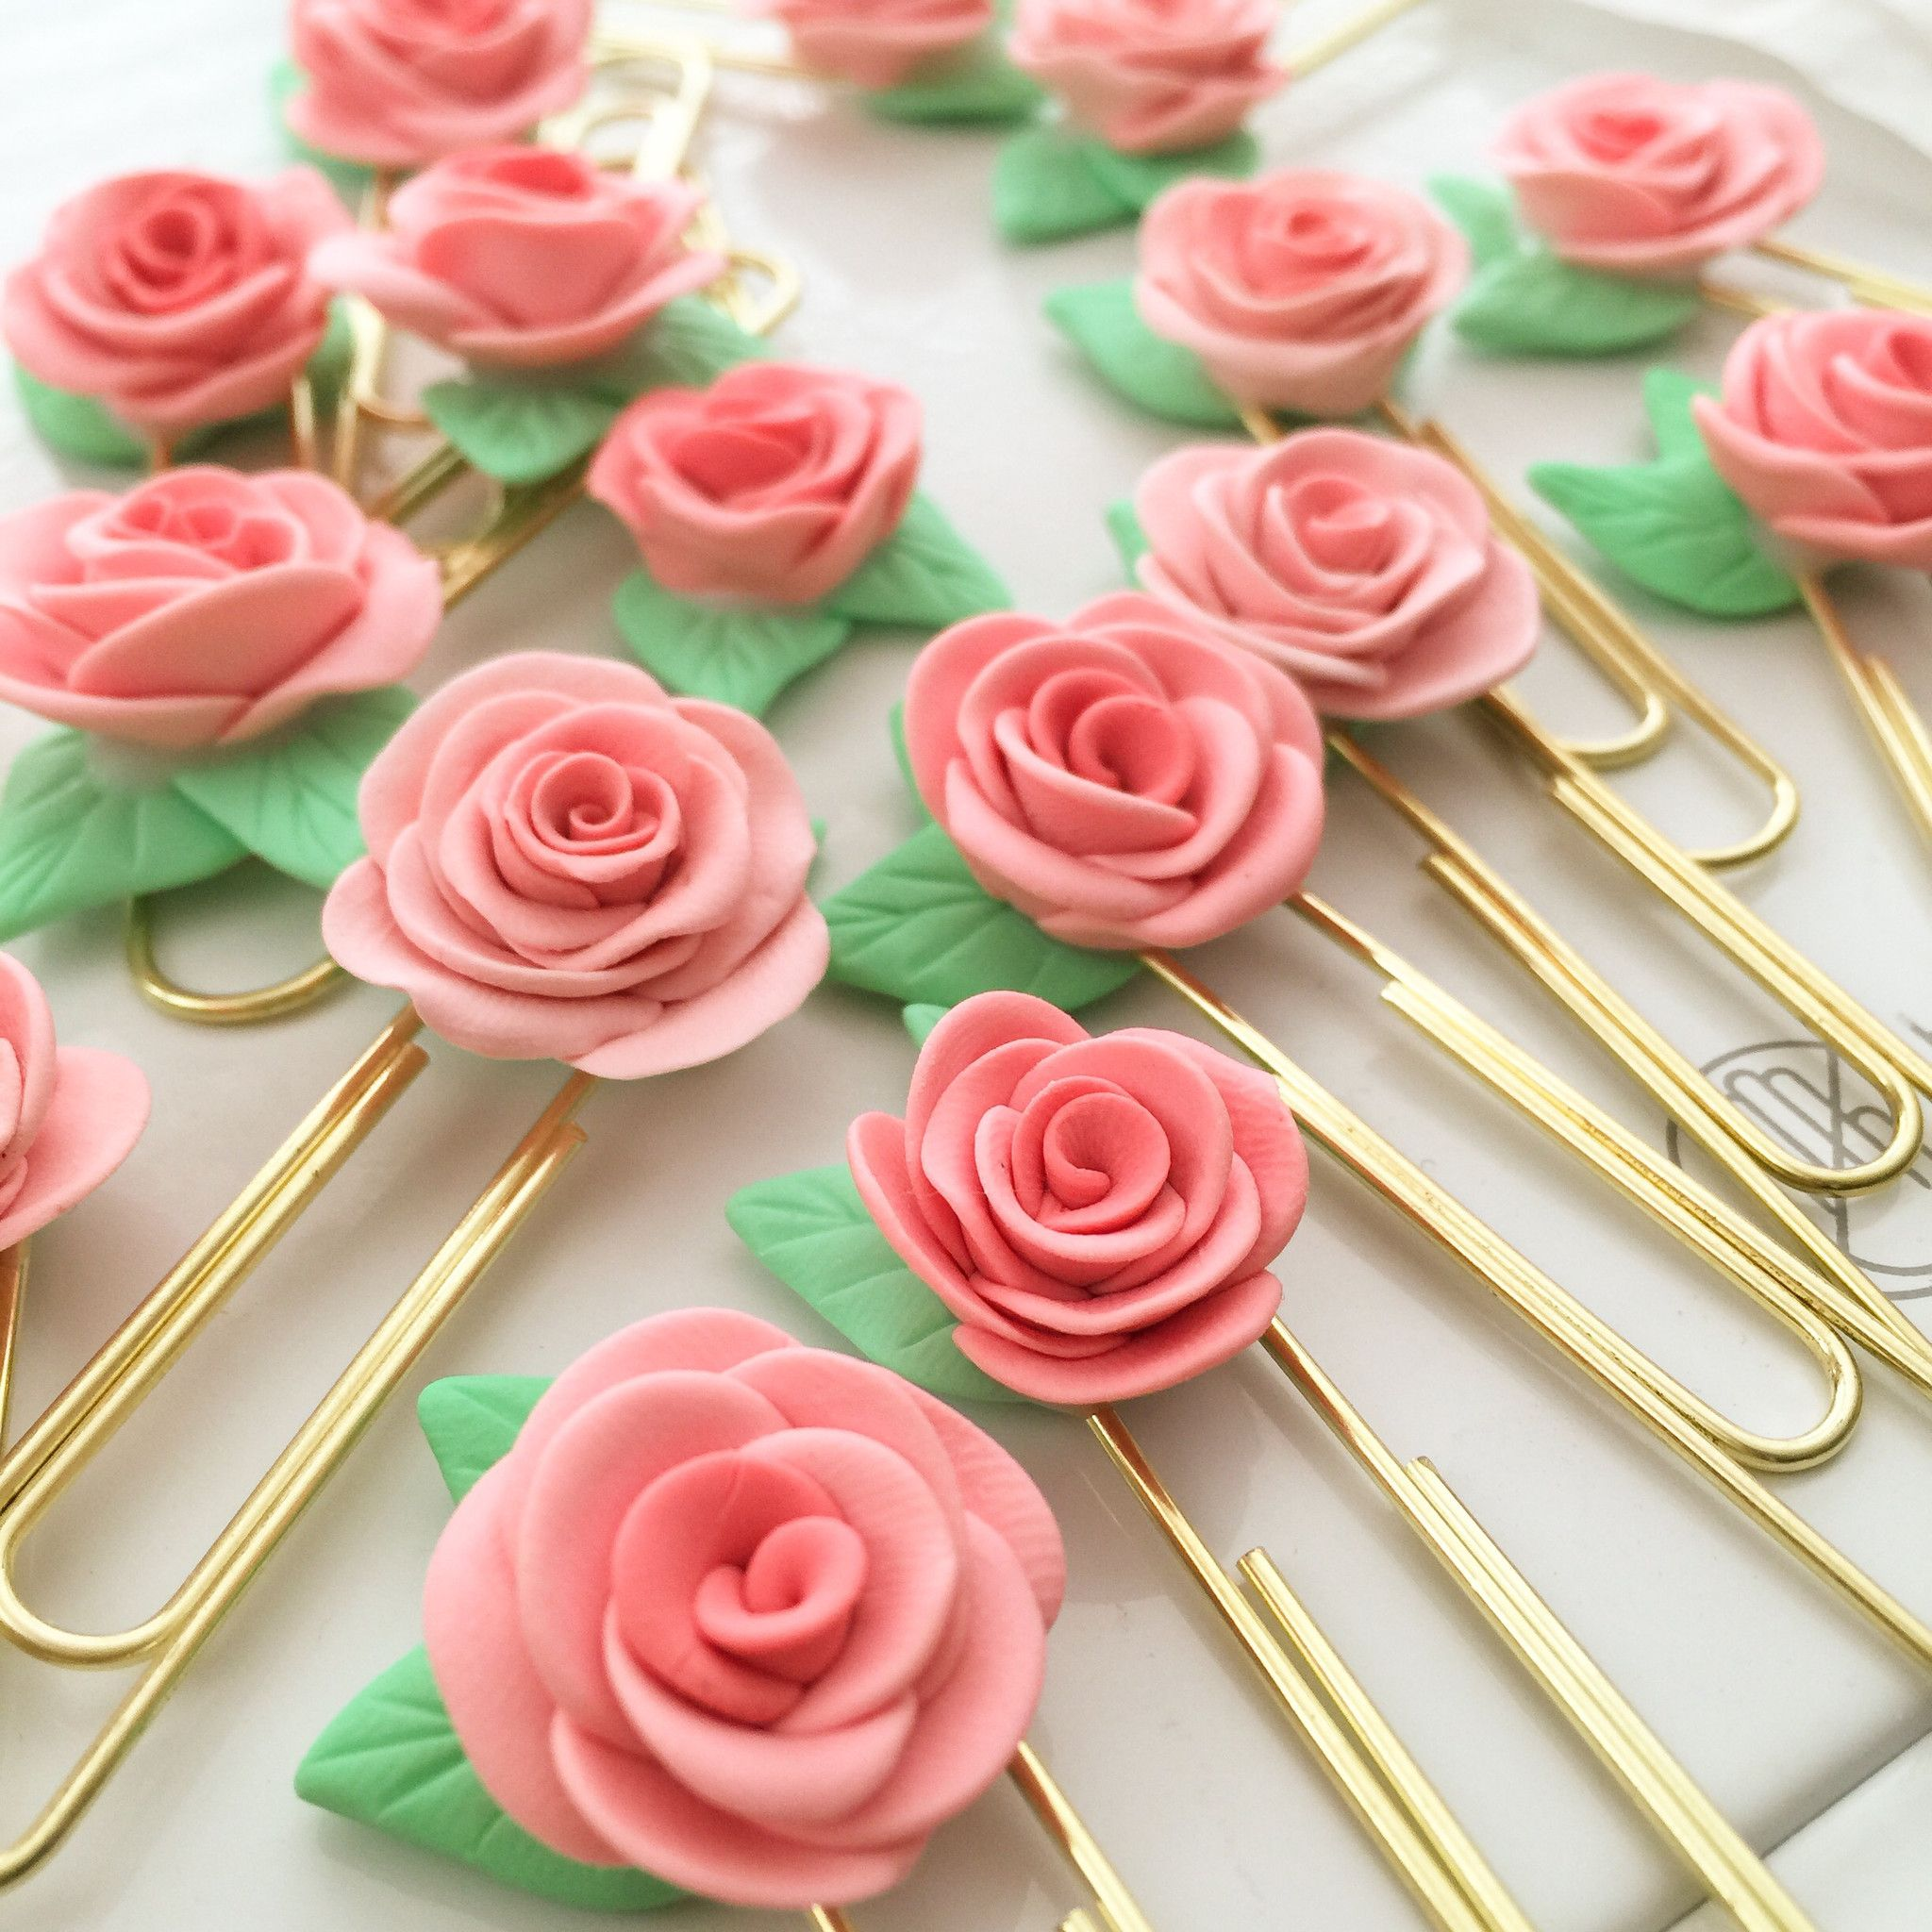 Peach Rose Planner Clips                                                                                                                                                                                 More